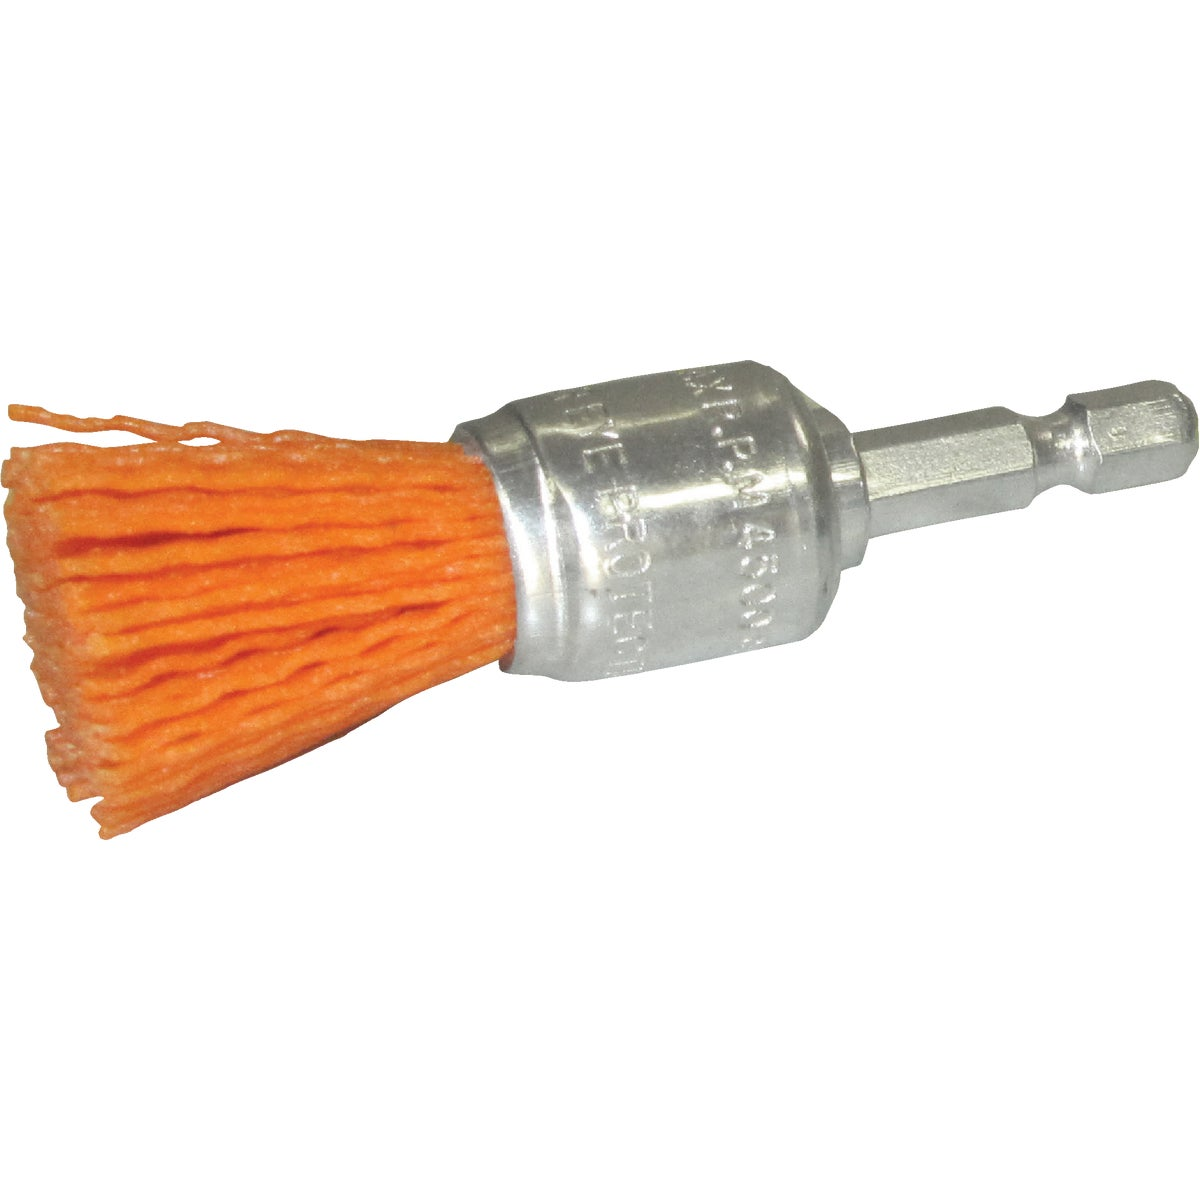 "3/4"" COARSE END BRUSH - 541781-34 by Dico Products Corp"